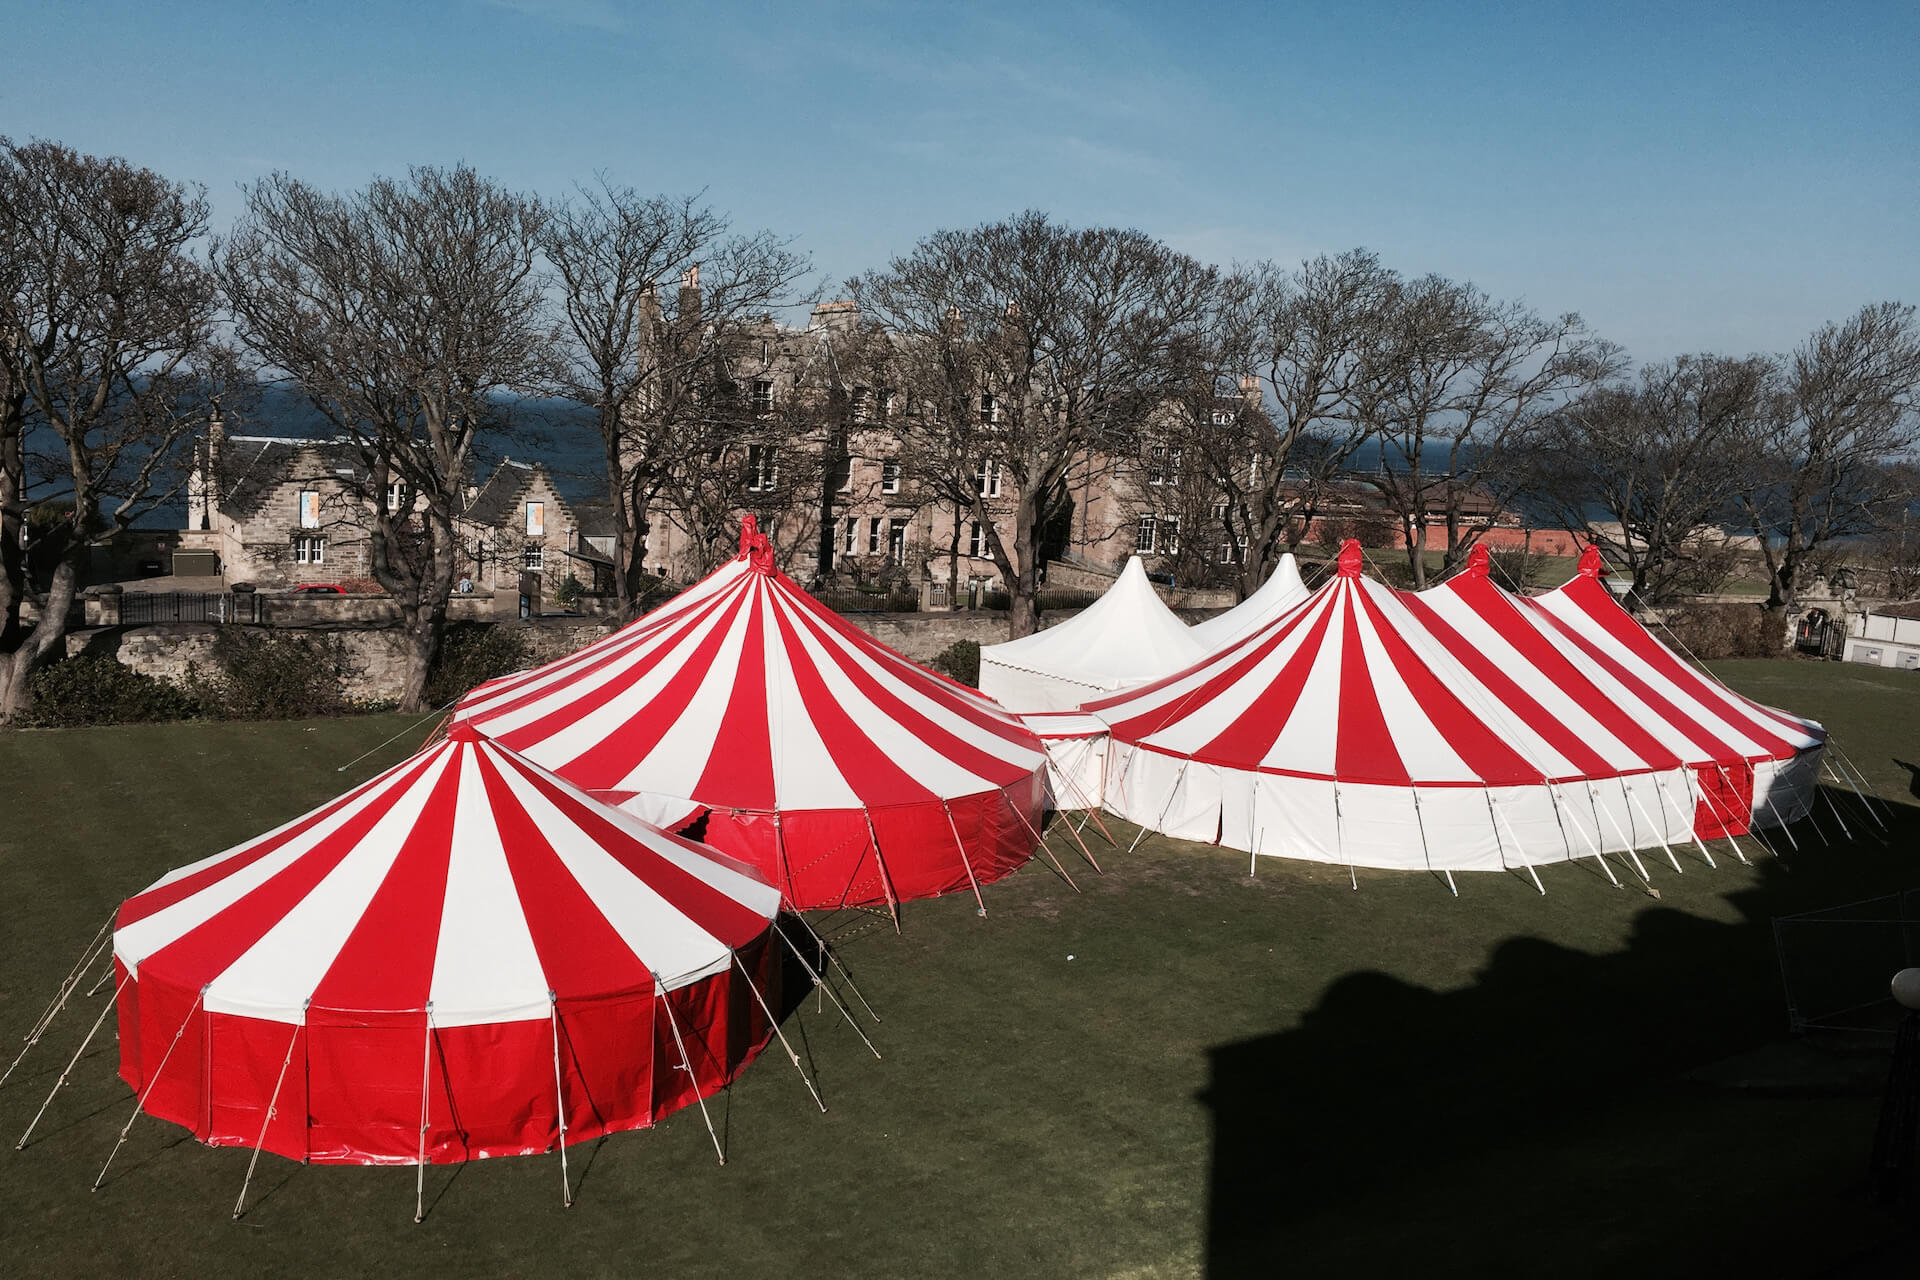 Red and white circus tents